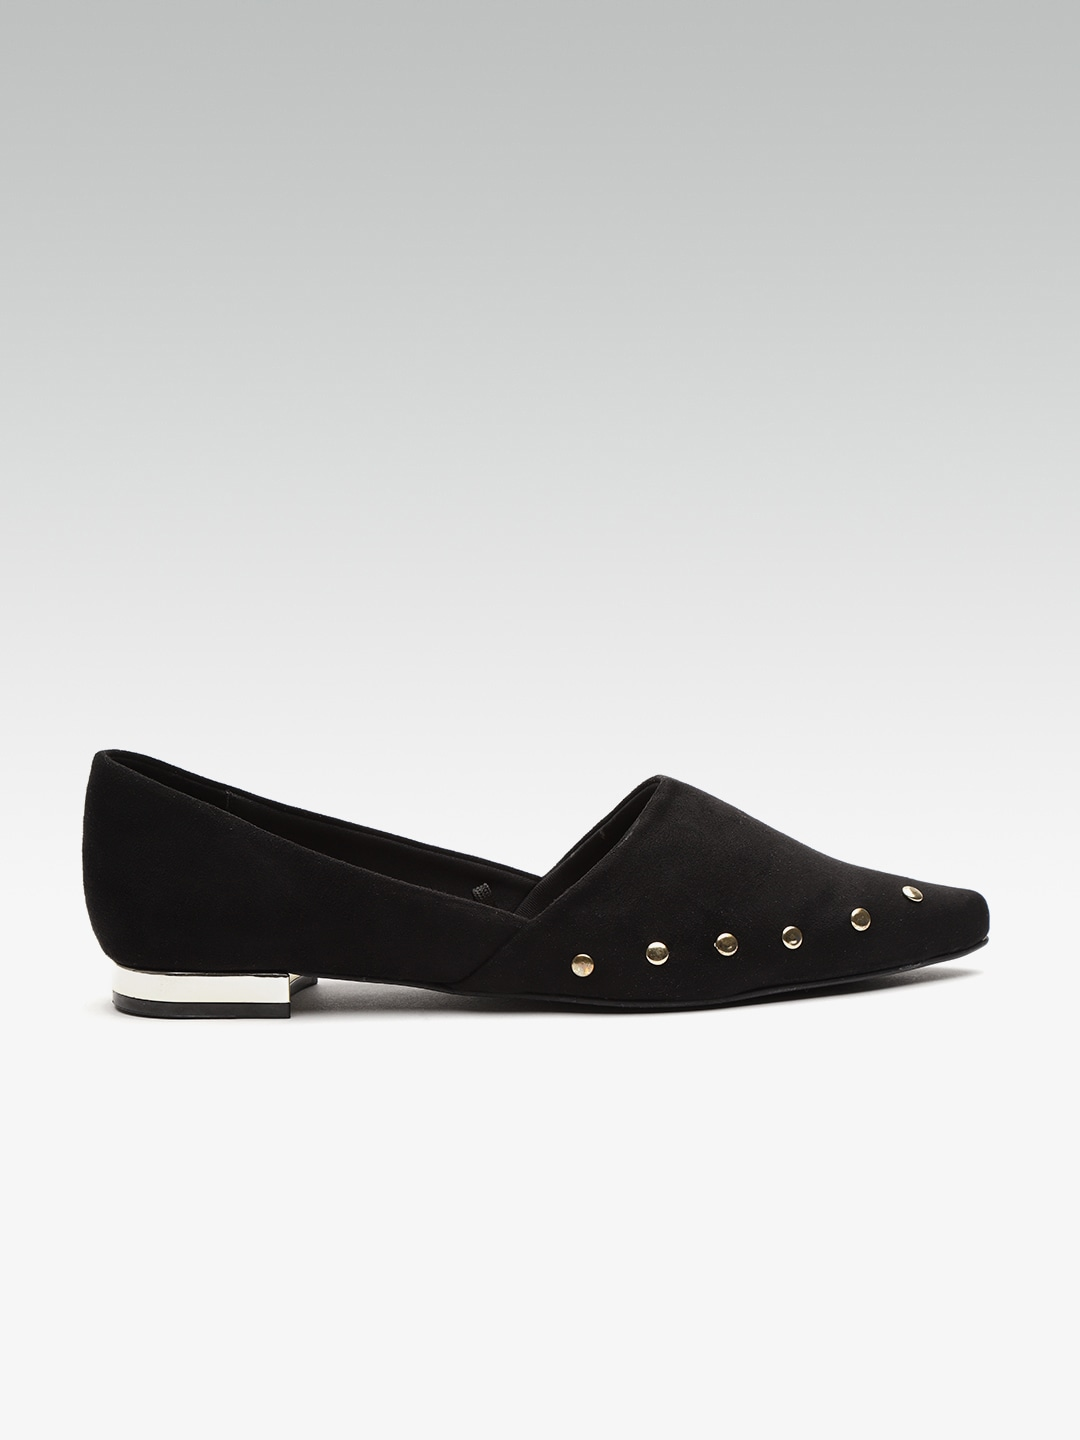 89bcb9fb9a3b Flats - Buy Womens Flats and Sandals Online in India